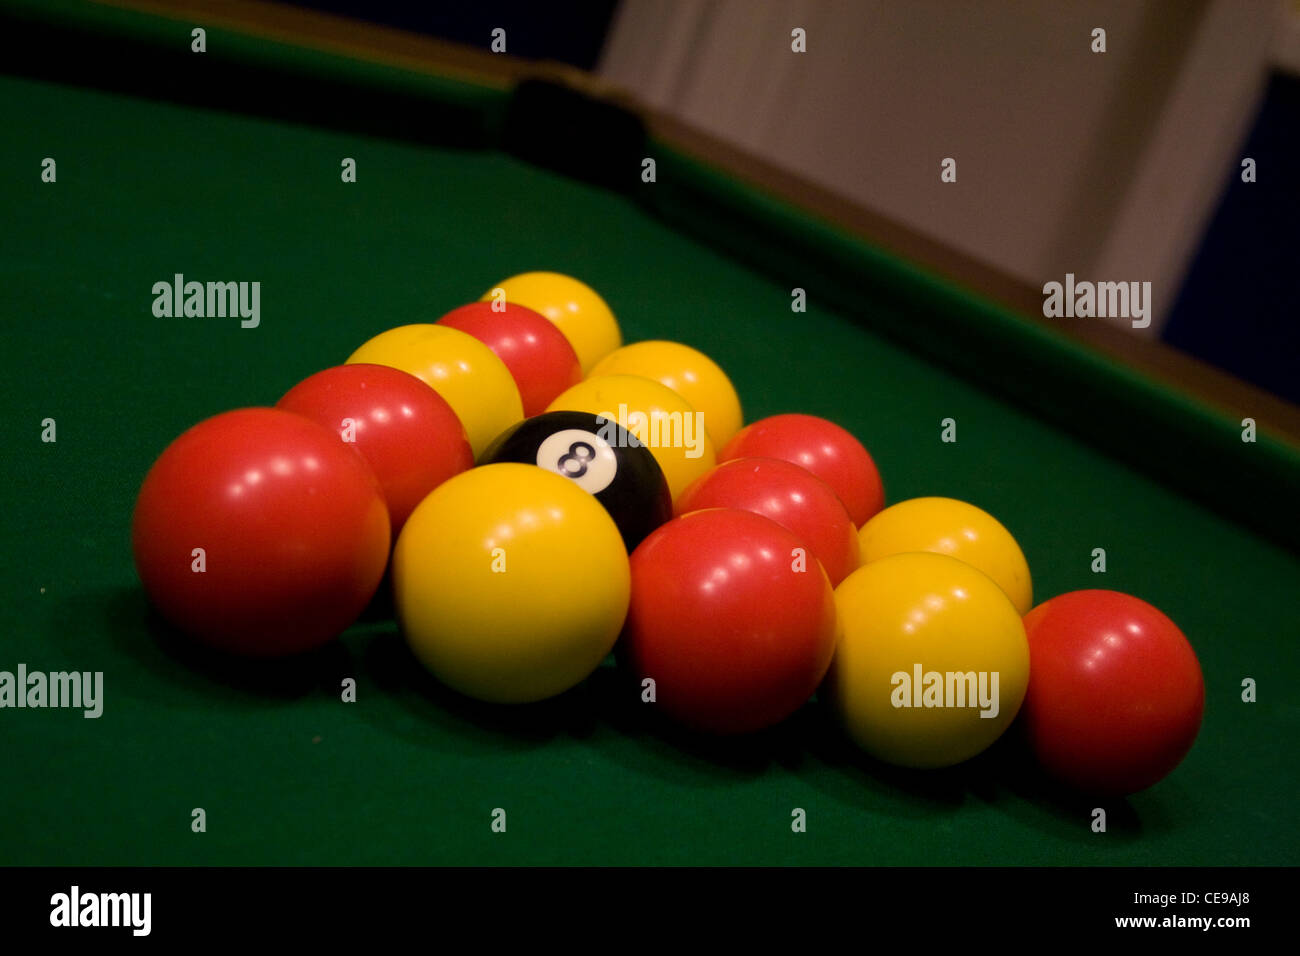 8 Ball Pool Balls racked up on the table ready for a game. - Stock Image